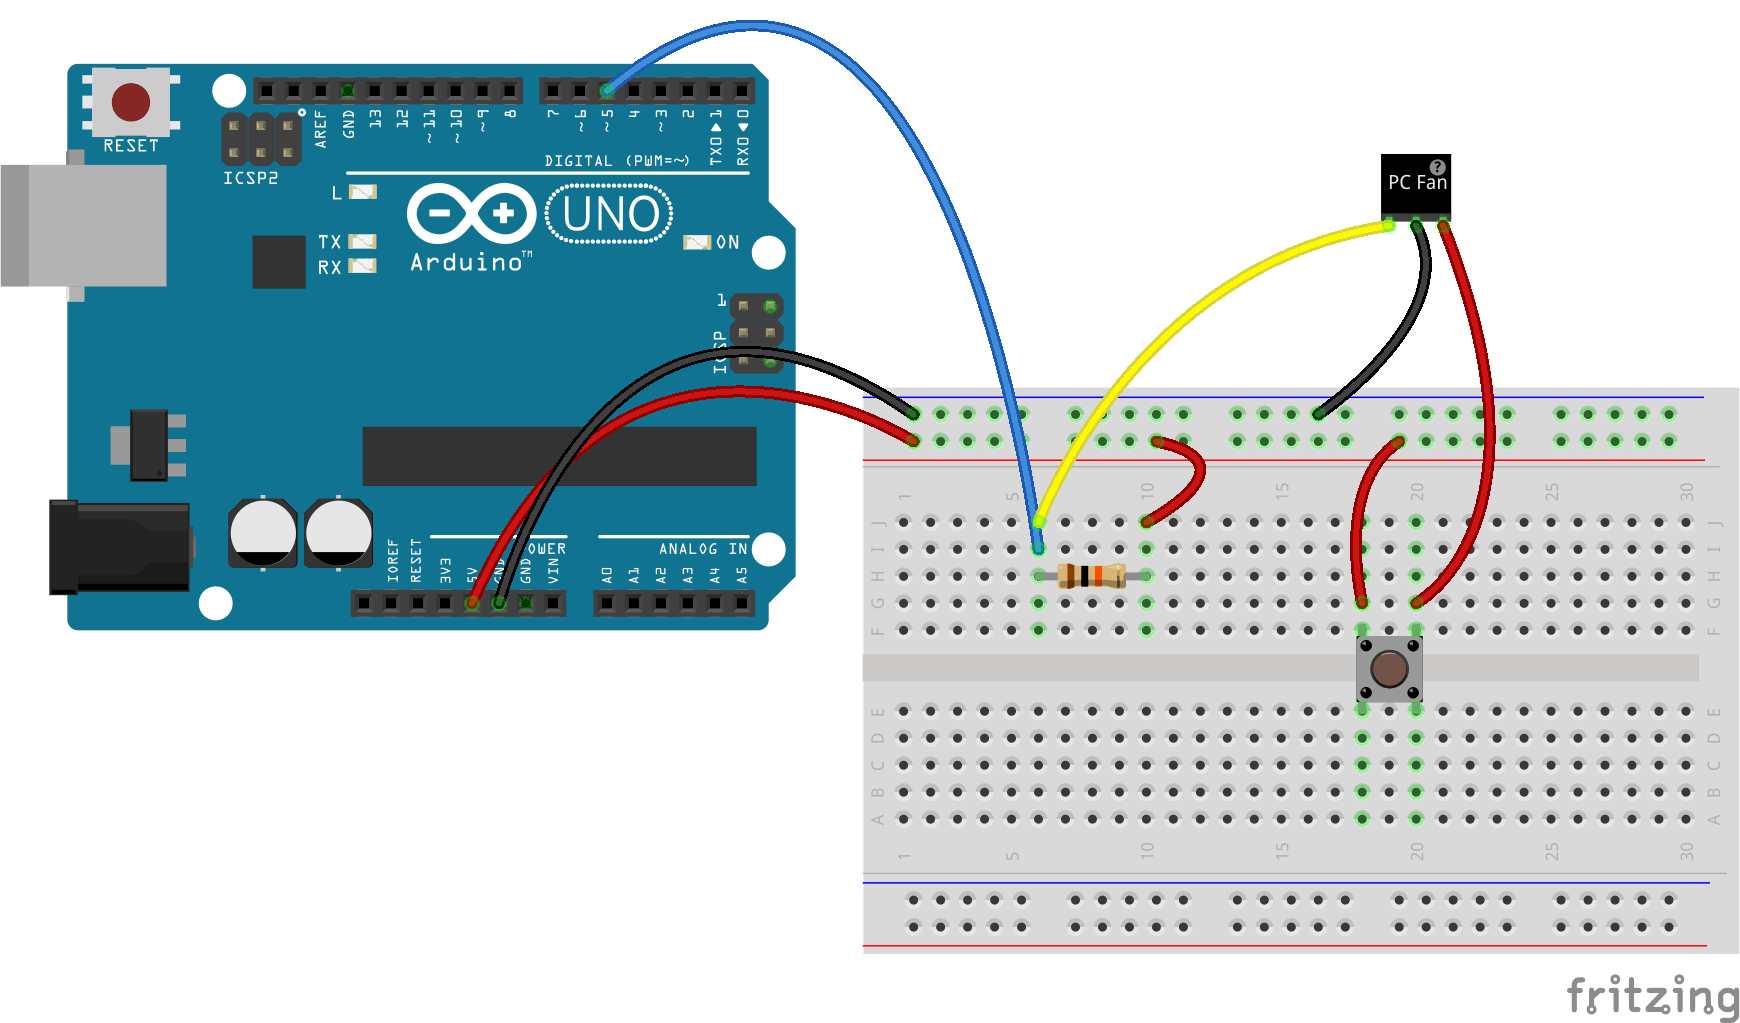 Wiring for testing the fan on an Arduino Uno.